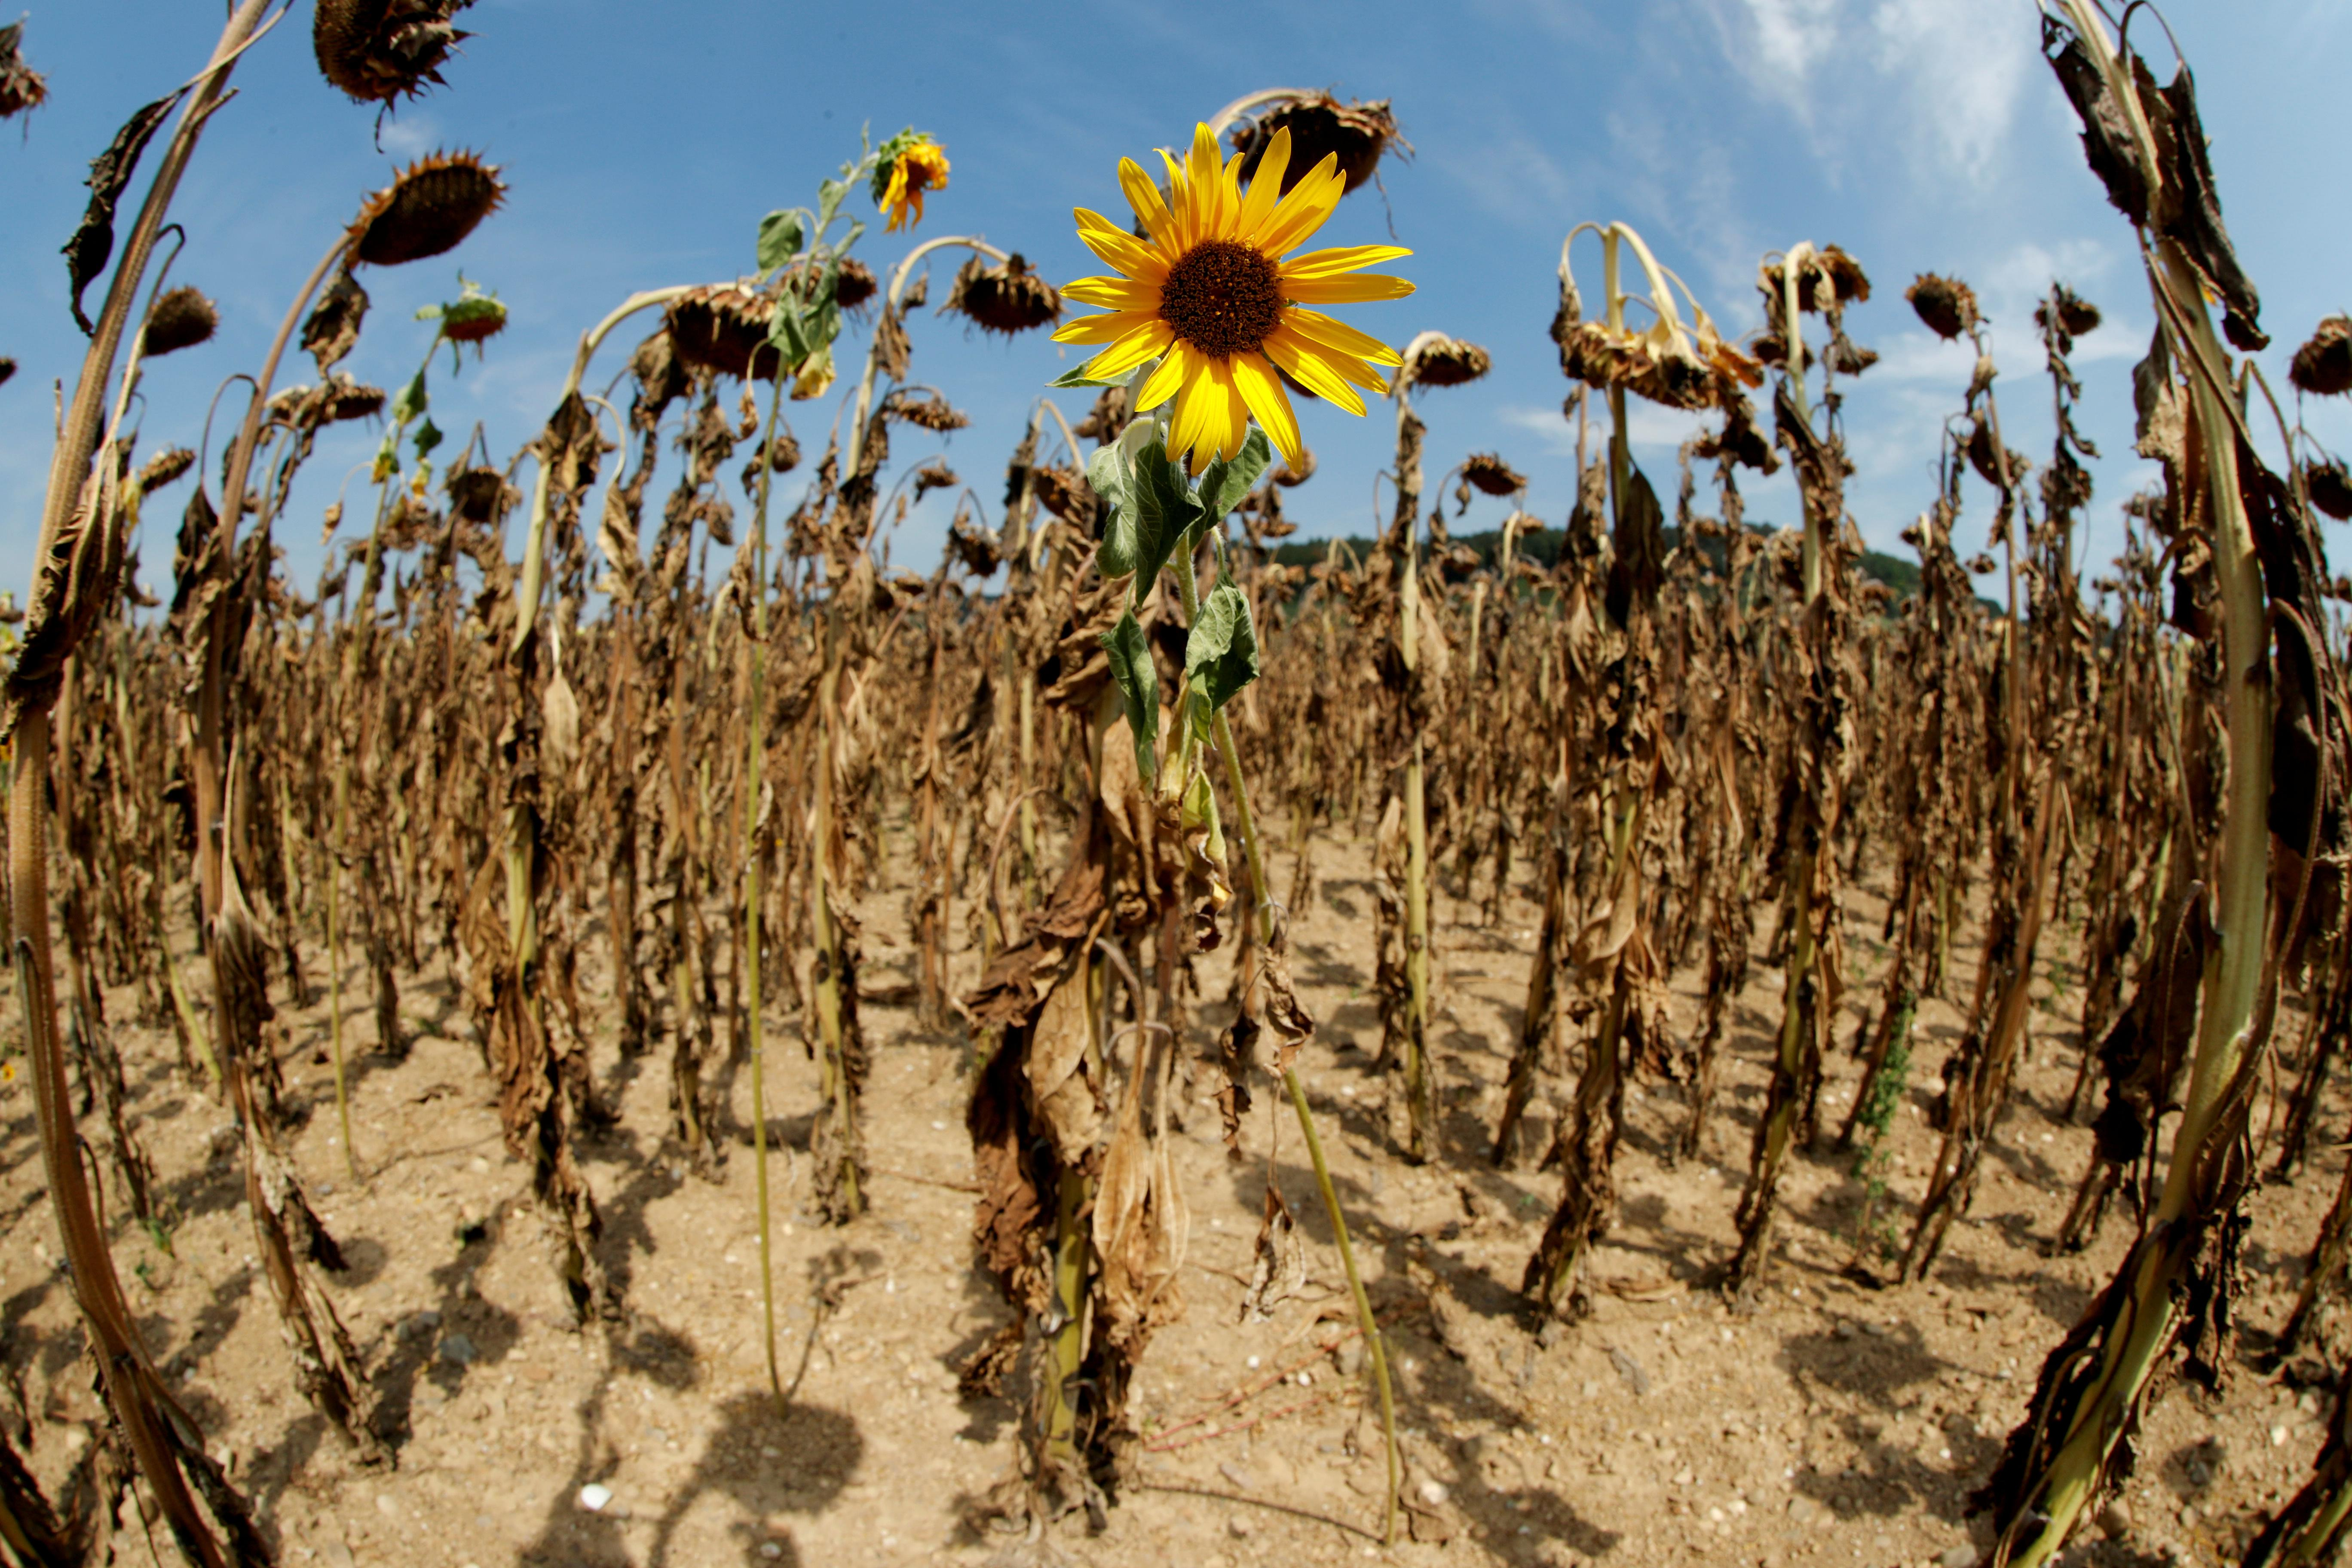 'Indiana Jones' scientists collect seeds in wild for climate change...